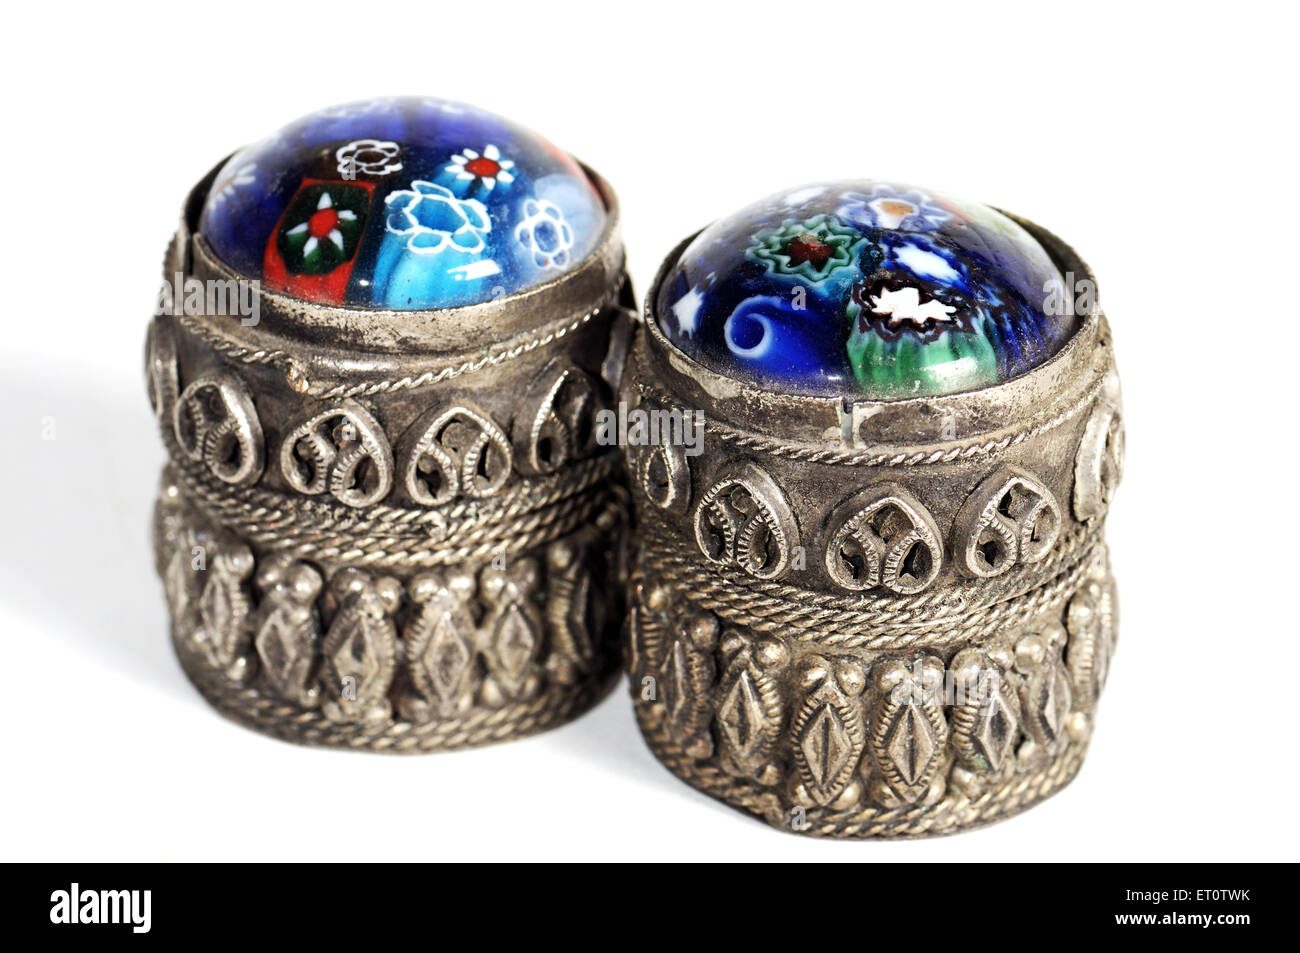 Handicraft ; engraved design with stones on box ; India - Stock Image